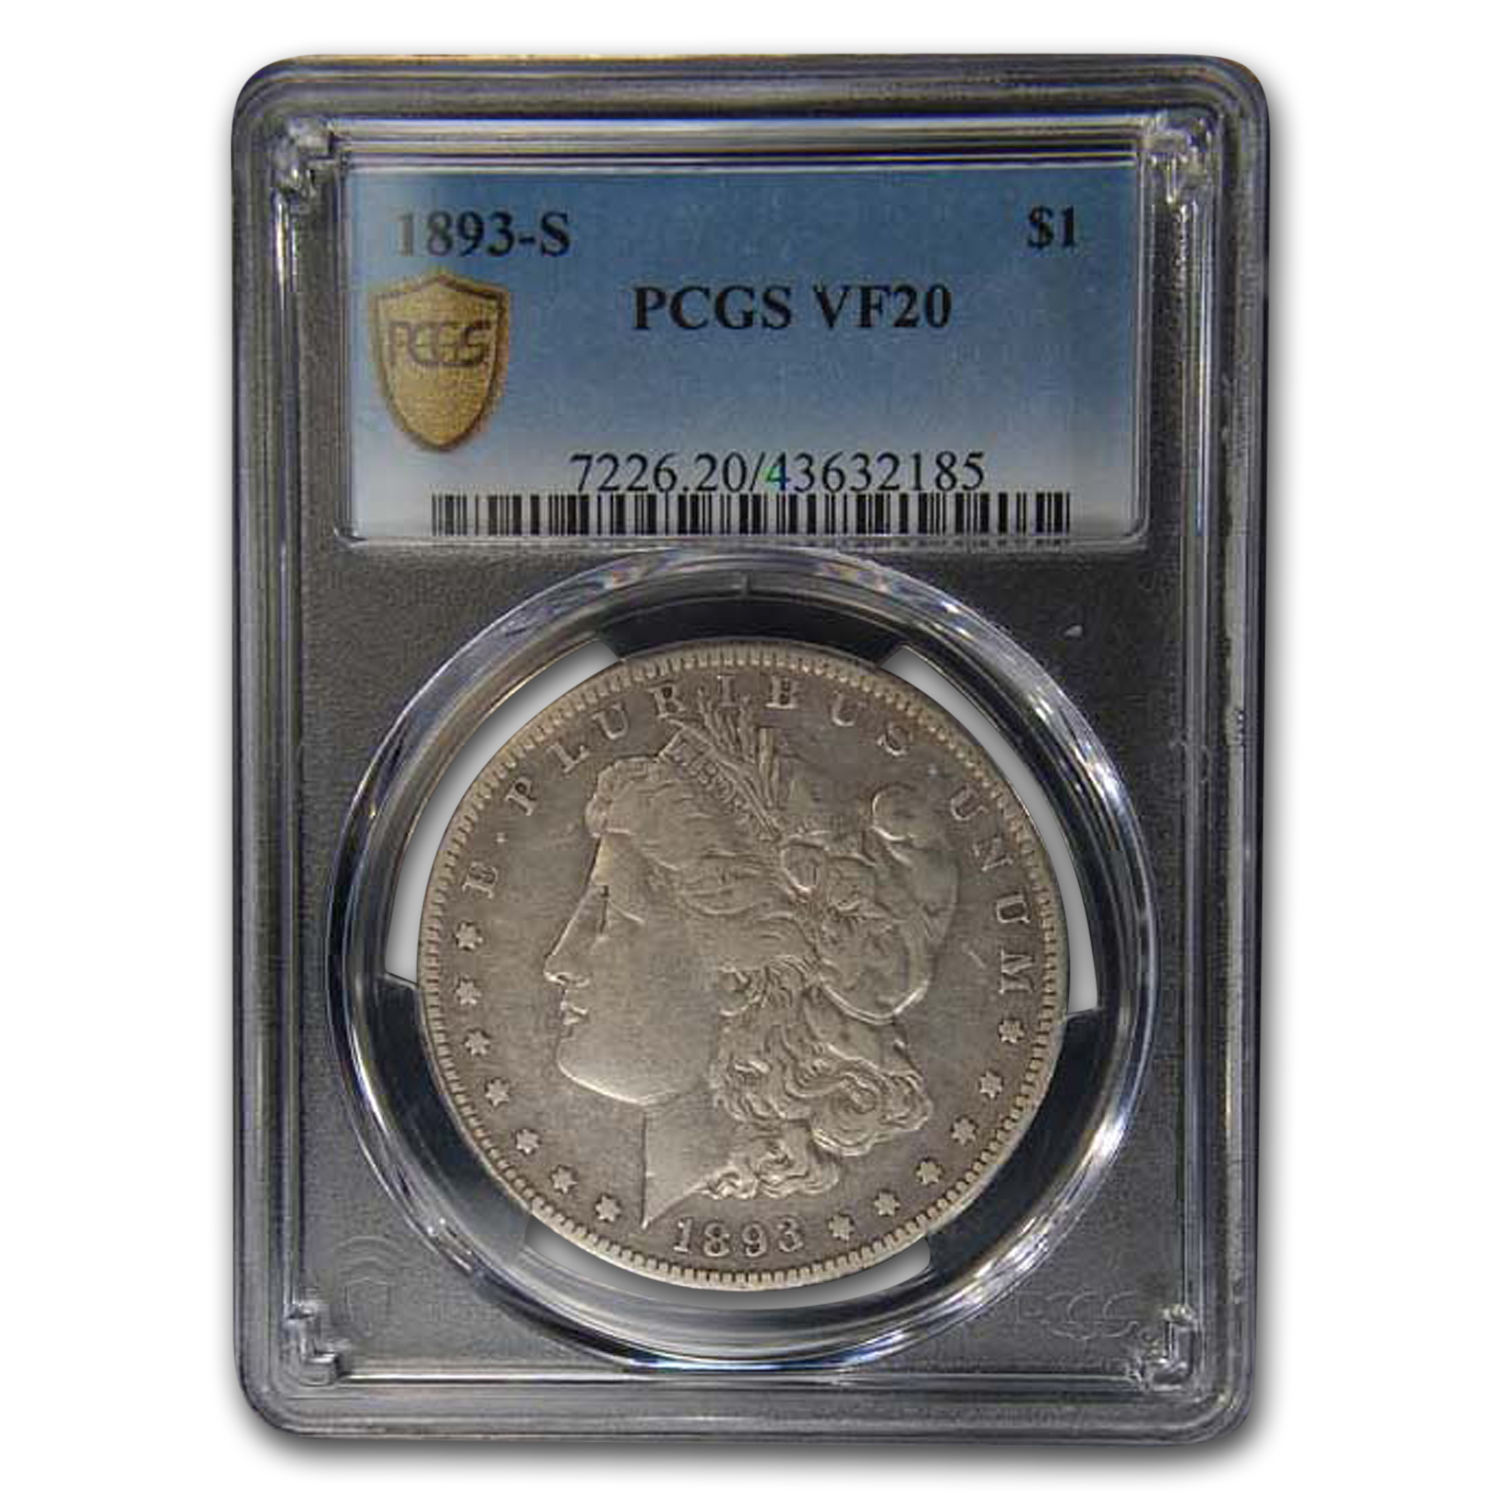 1893-S Morgan Dollar VF-20 PCGS